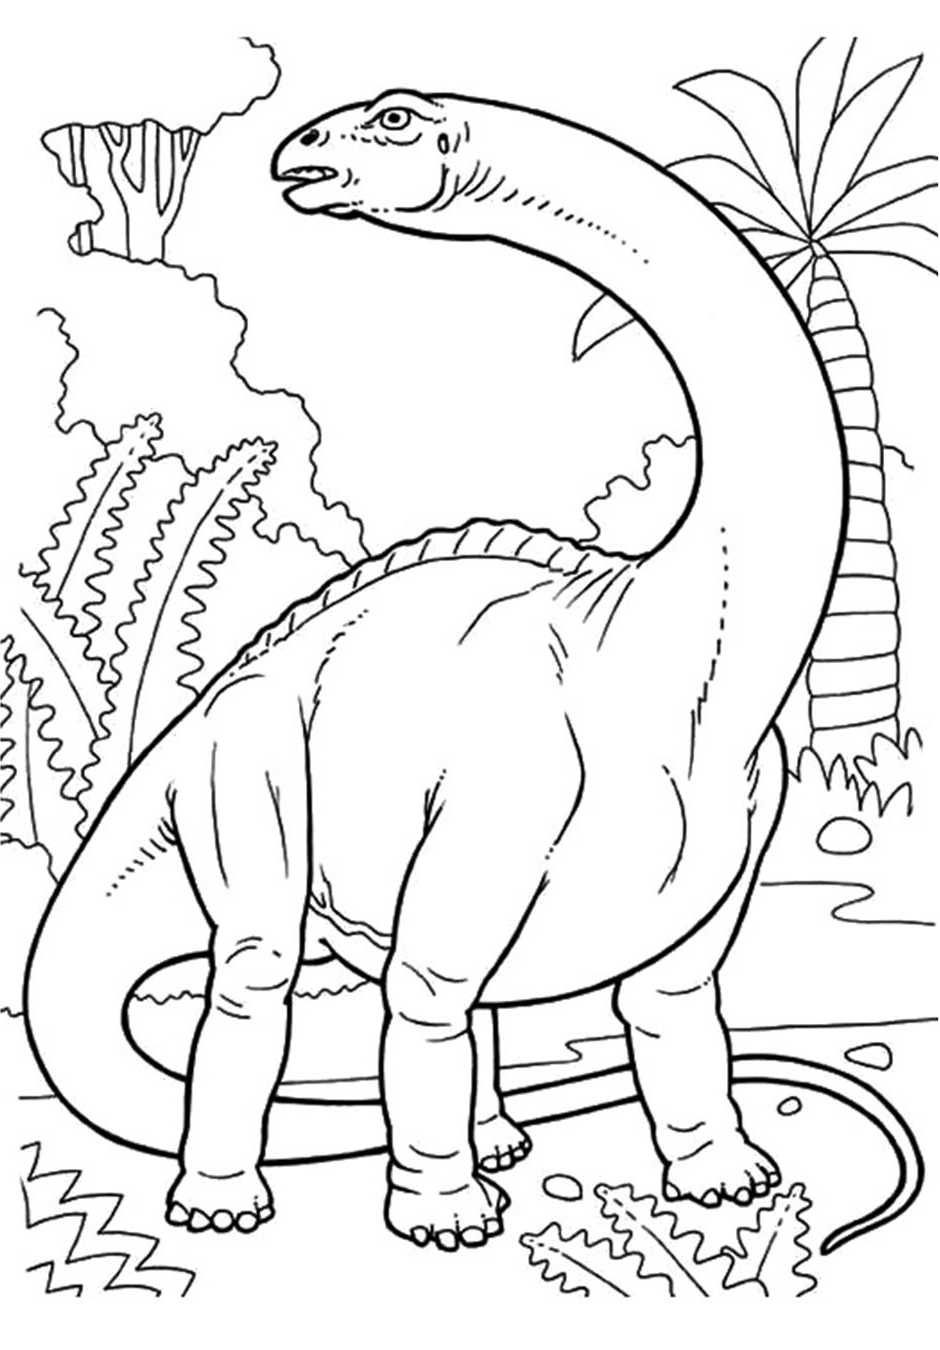 cartoon dinosaur coloring pictures coloring pages from the animated tv series dinosaur train cartoon pictures coloring dinosaur